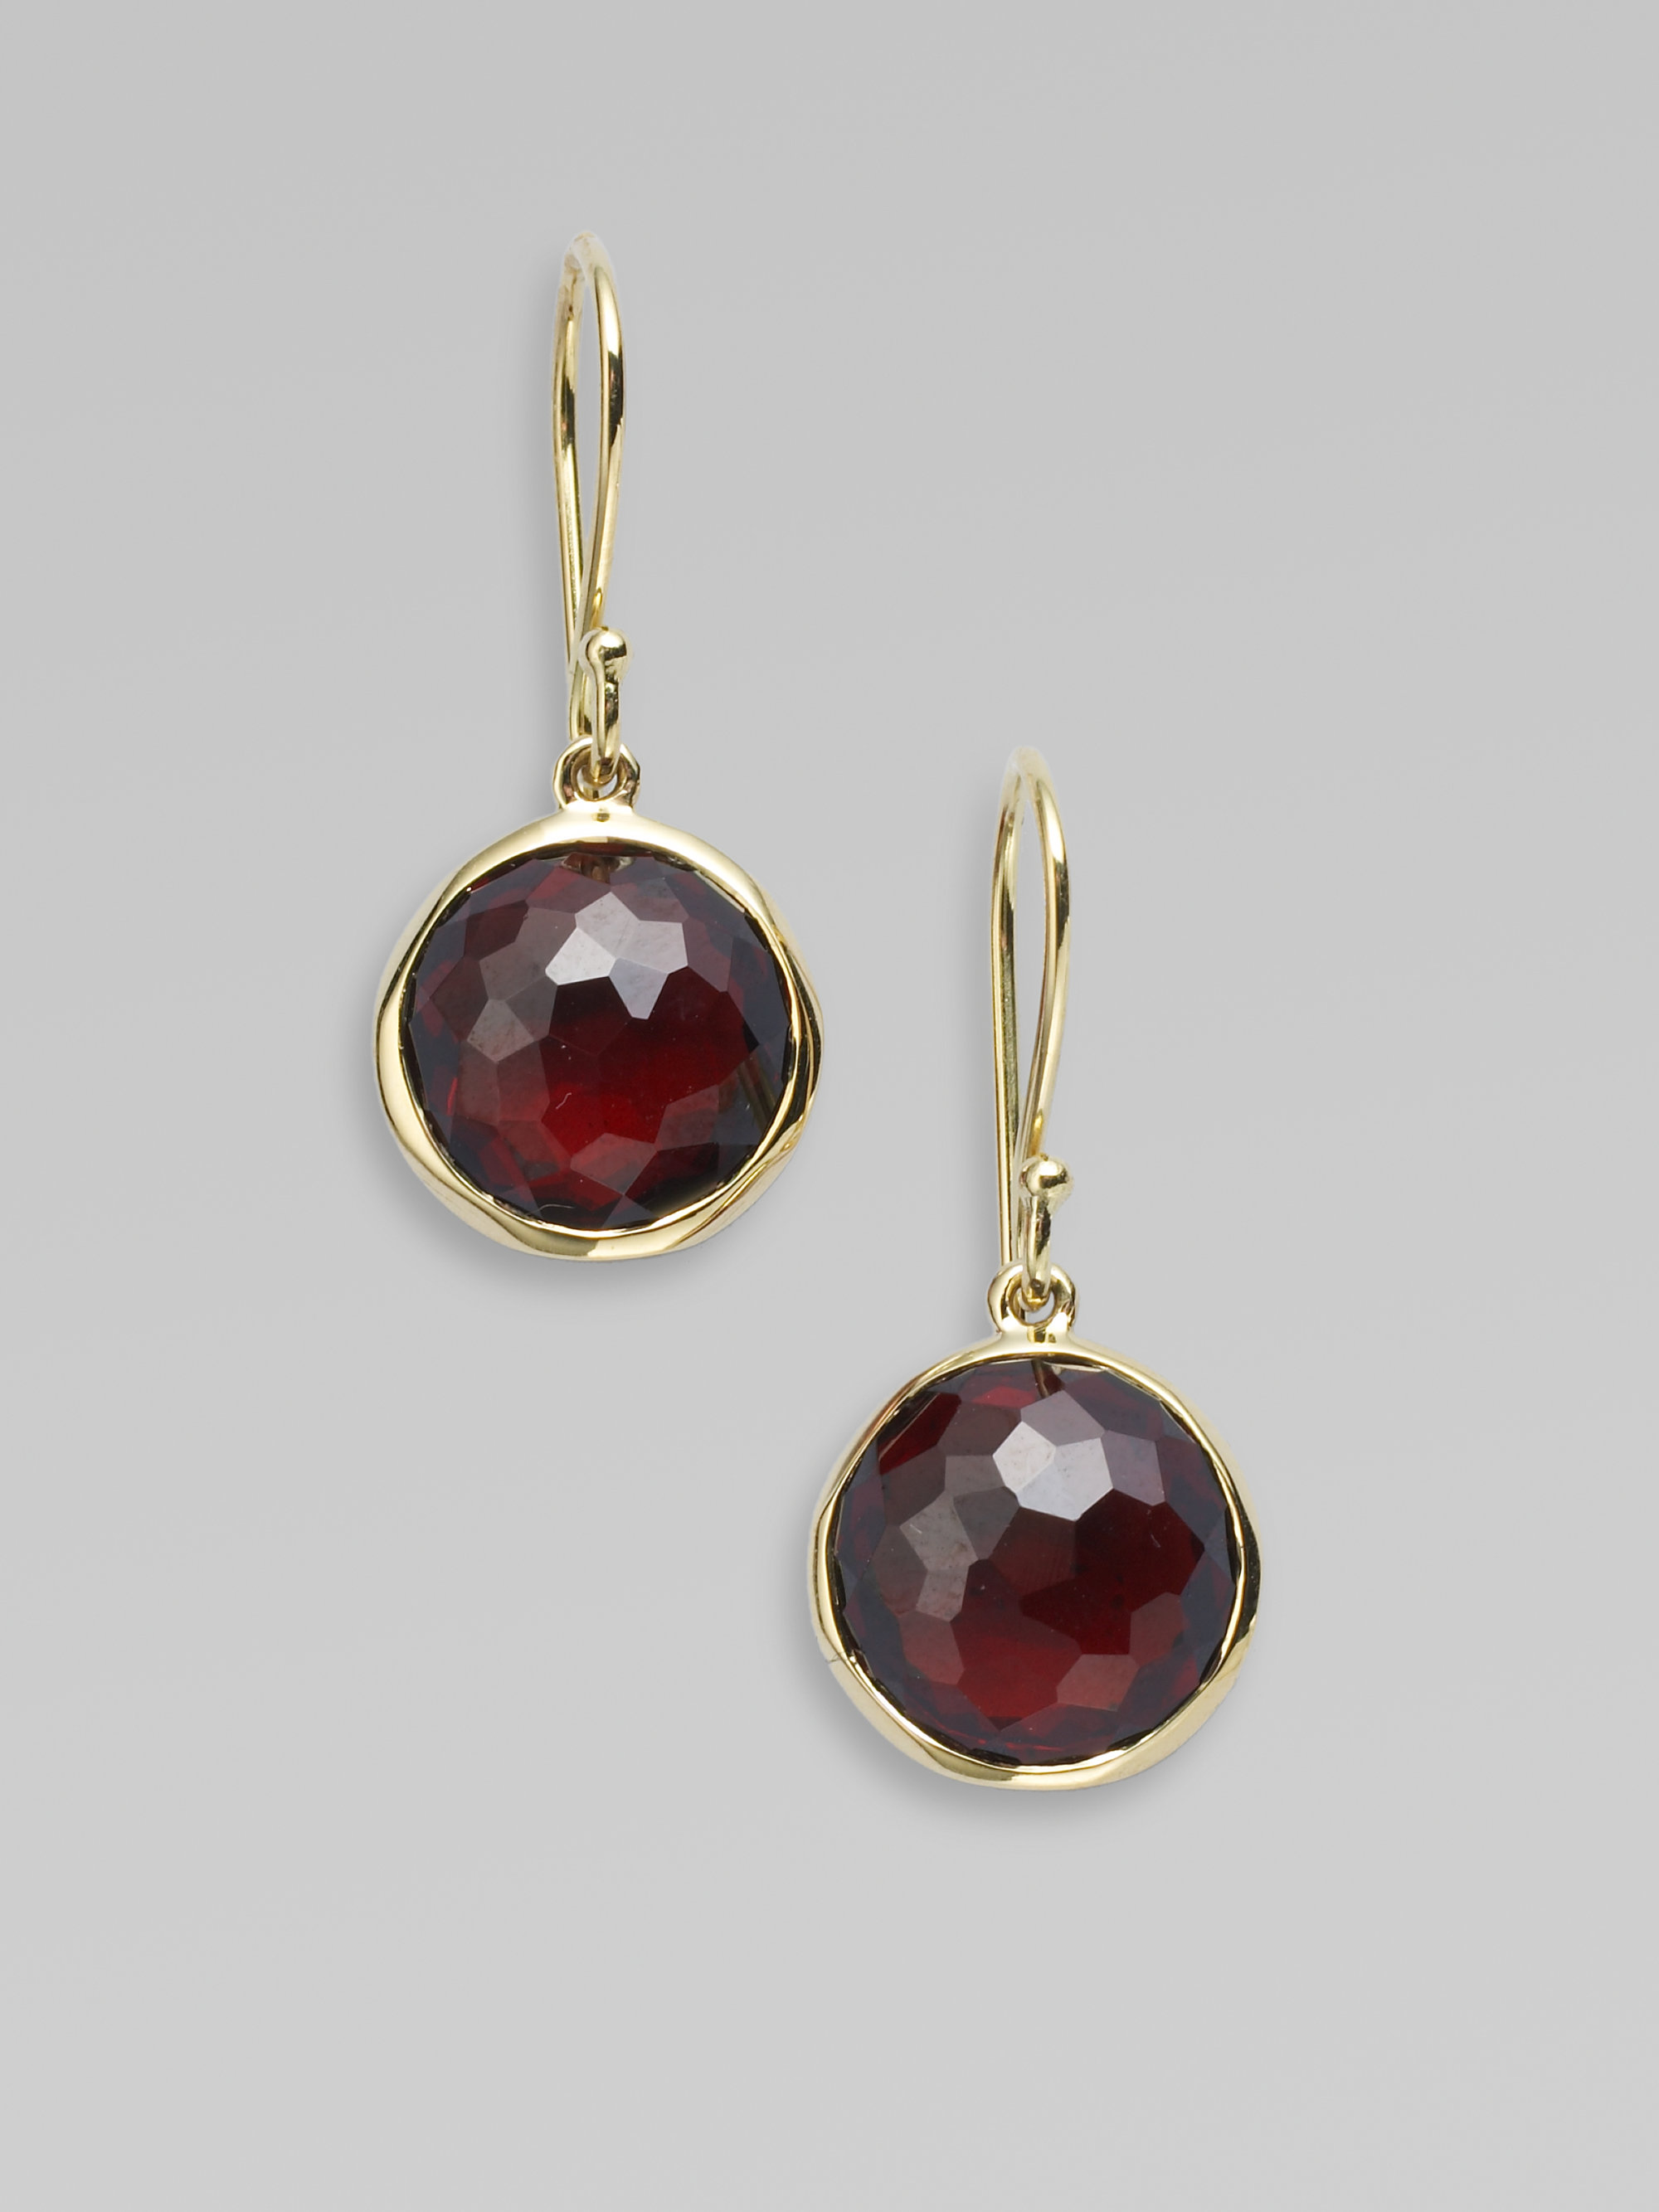 the small earrings garnet rhodolite cluster quartz valltasy black with red rutilated romance design